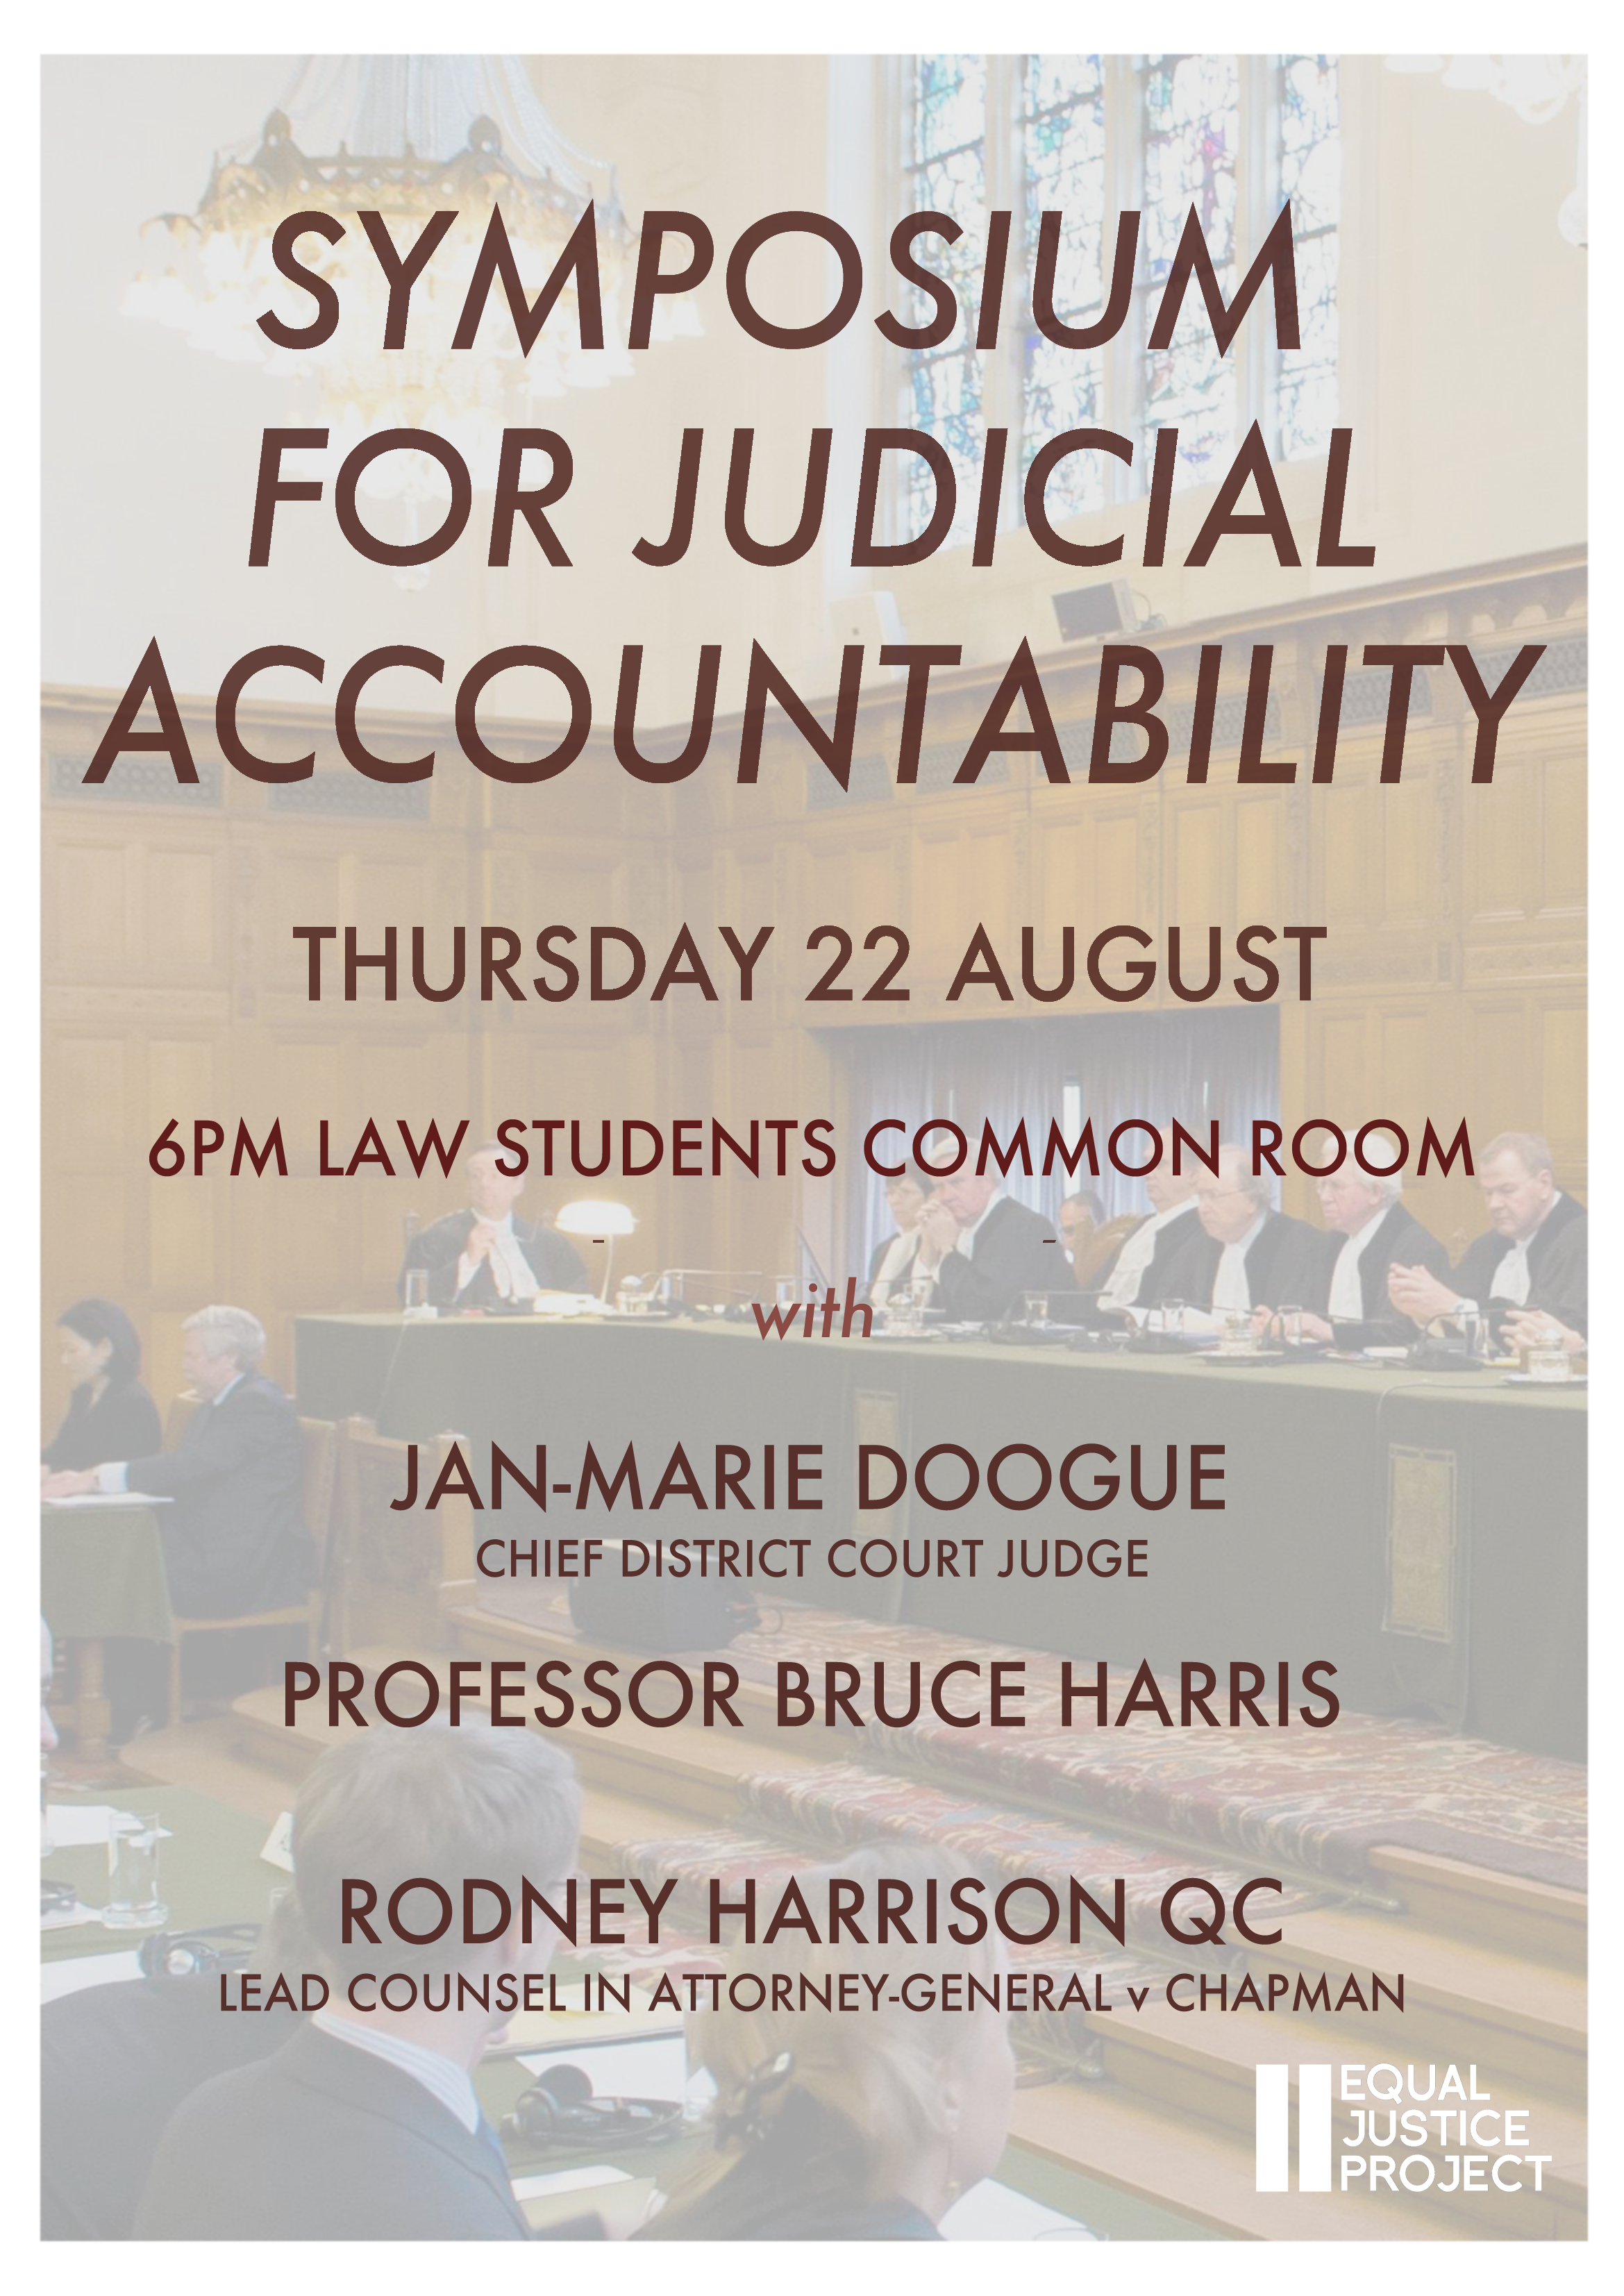 Symposium on Judicial Accountability